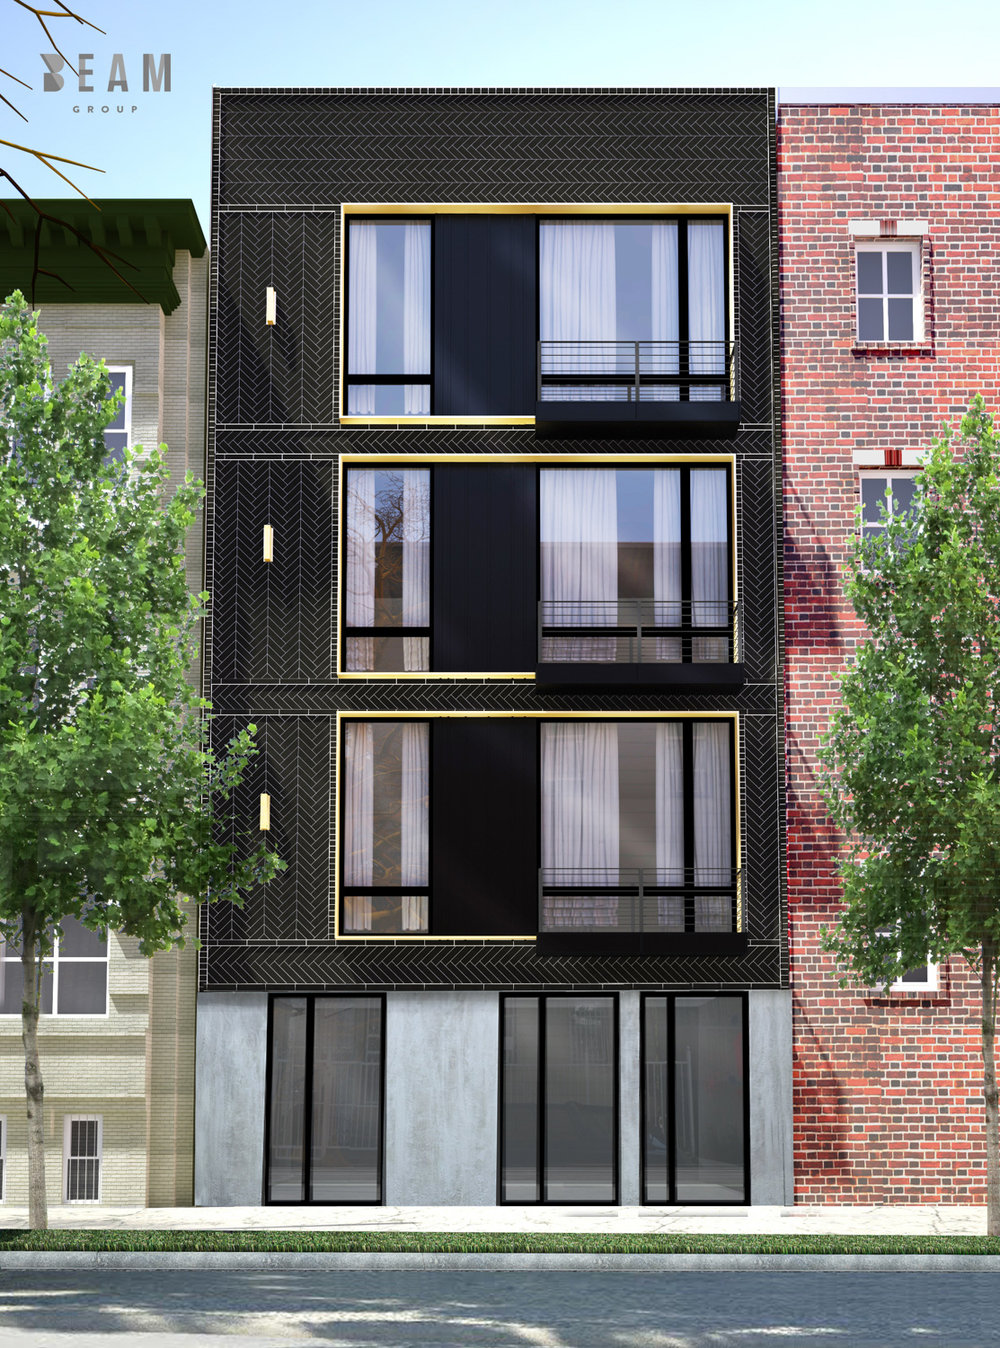 New Renderings Revealed of The BEAM Group-Designed 61 Bushwick Street in Brooklyn